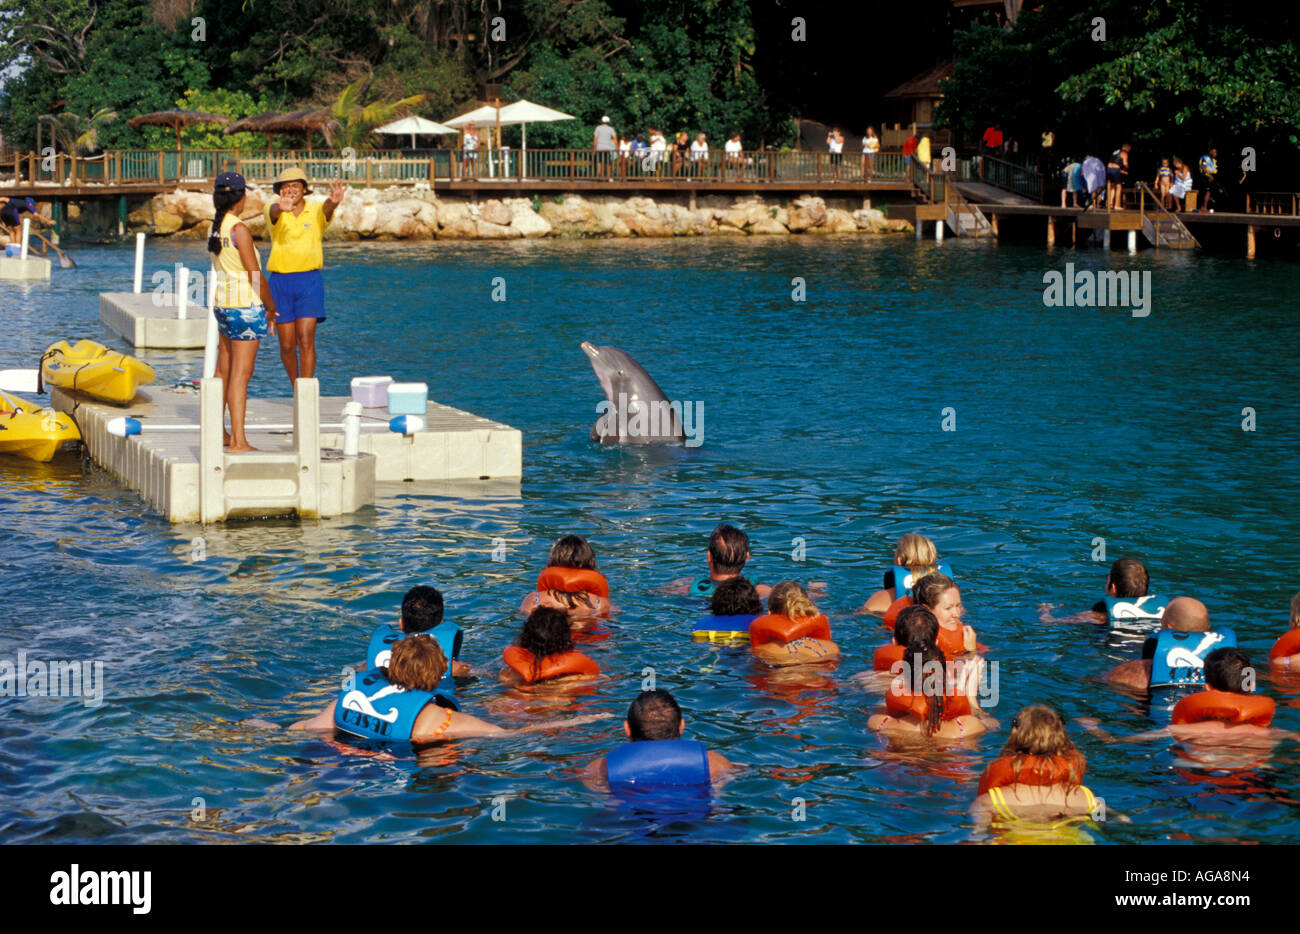 Learn about dcove (xjam) with our data and independent analysis including price, star rating, valuation, dividends, and financials. Jamaica Dolphin Cove Ocho Rios Dolphin Jumping Tourists Stock Photo Alamy